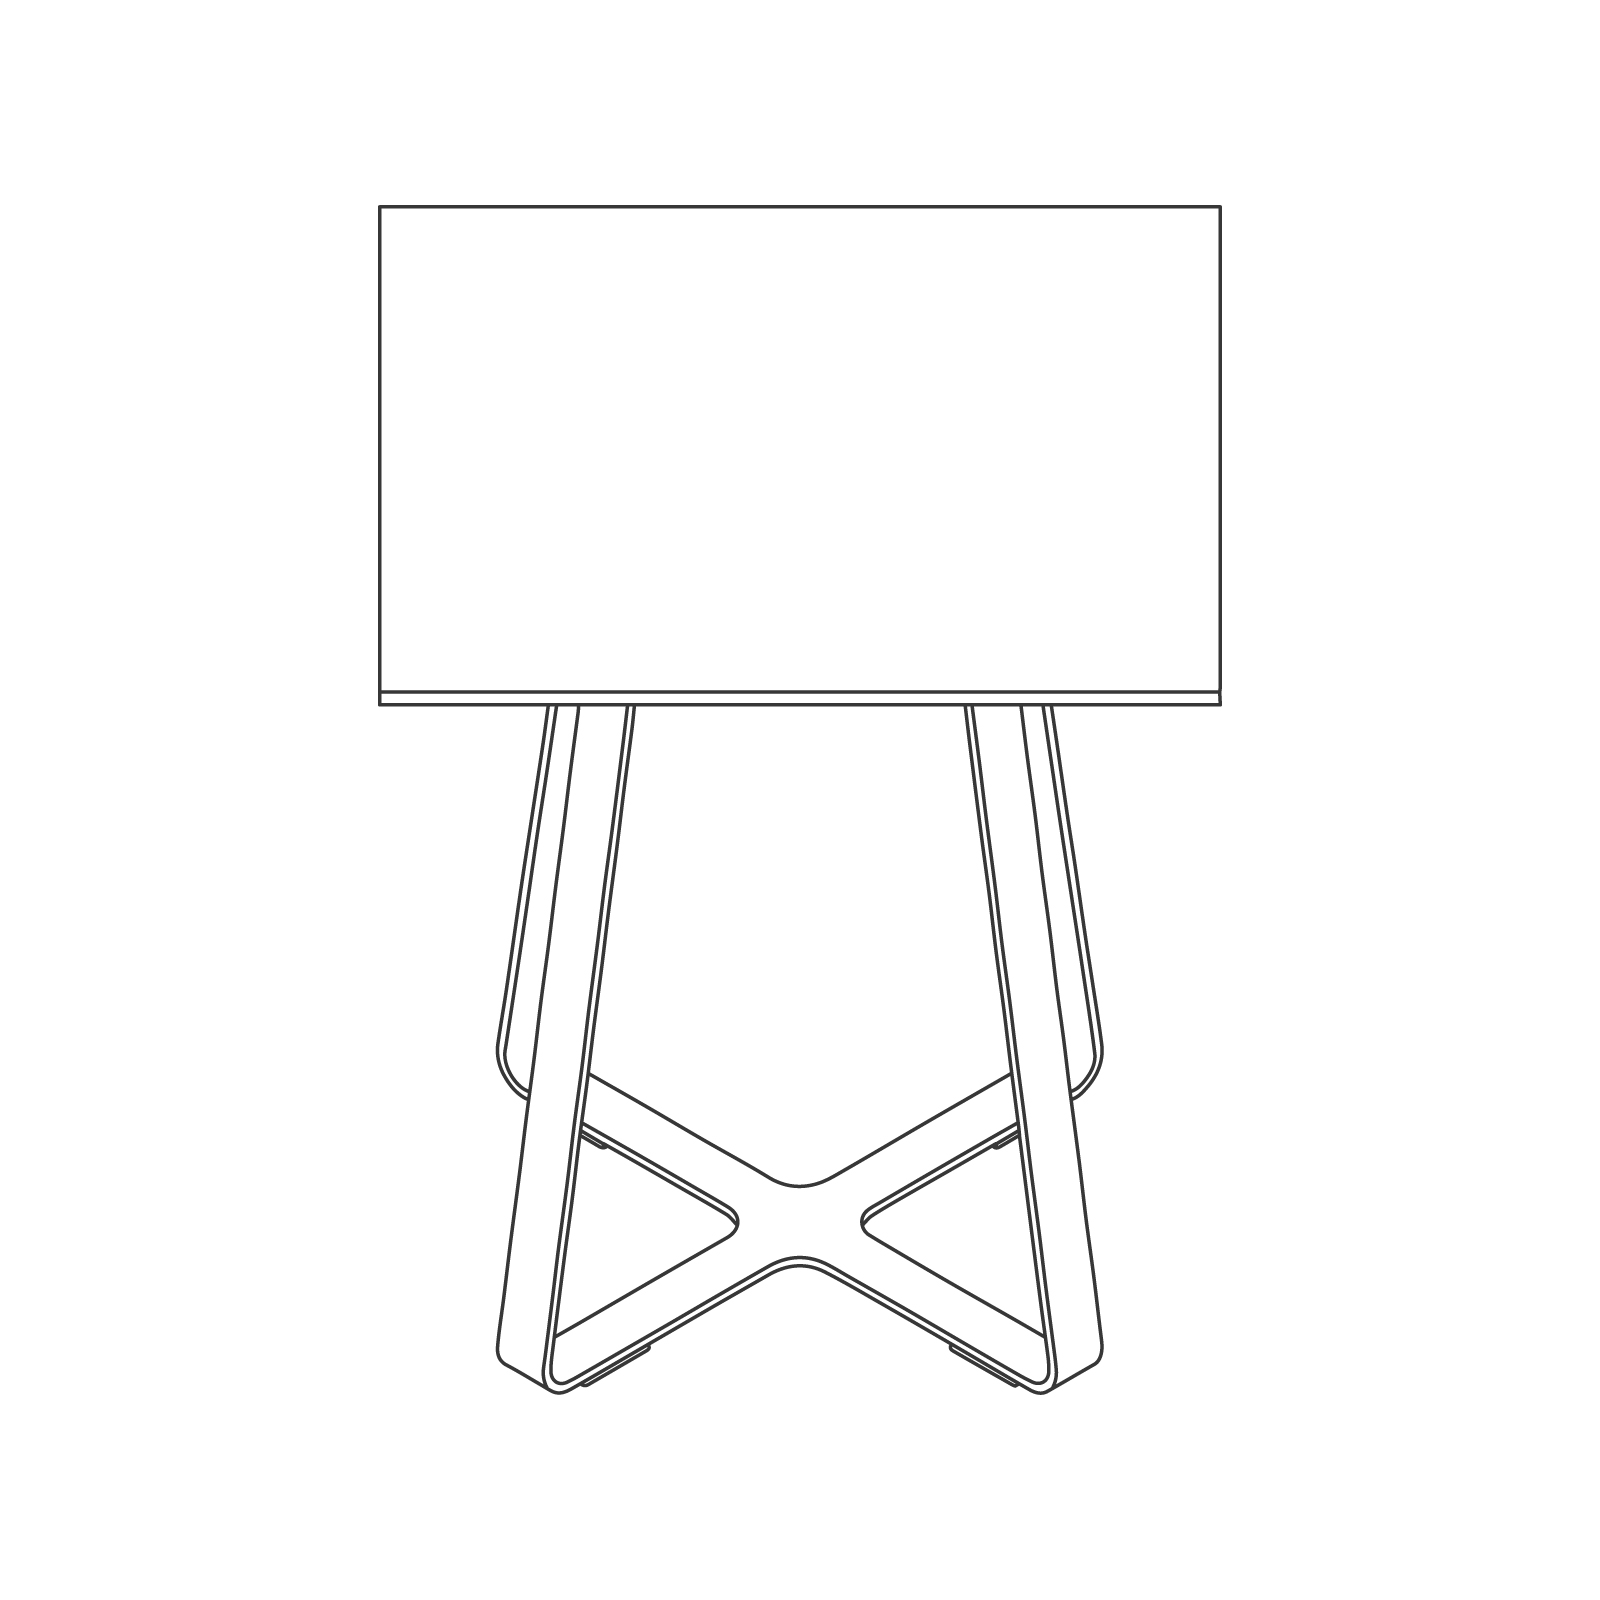 A line drawing of Frog Café Table–Square.